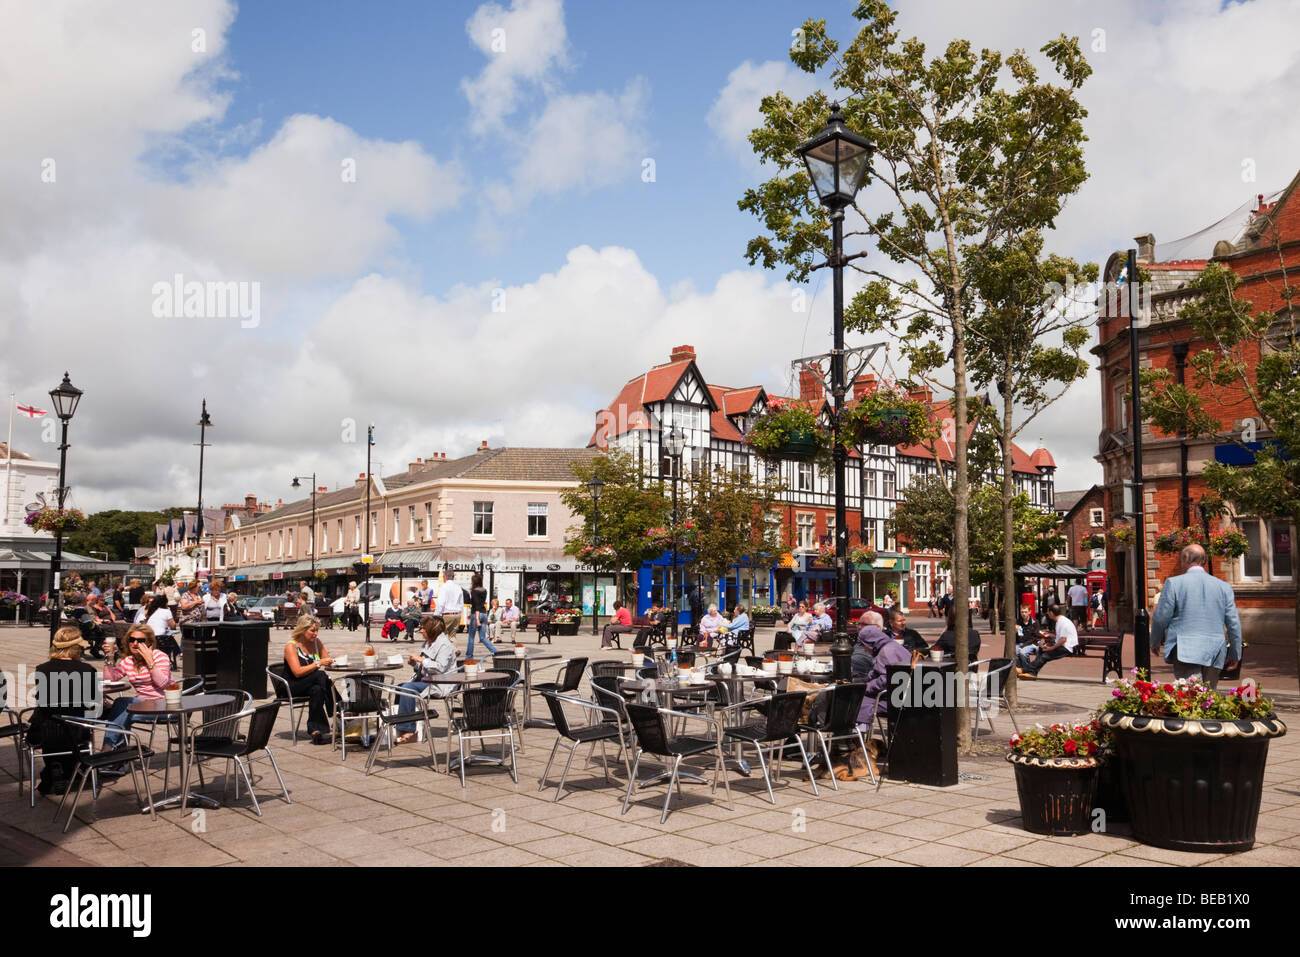 Clifton Square, Lytham St Annes, Lancashire, England, UK. People dining outside in pavement cafe - Stock Image